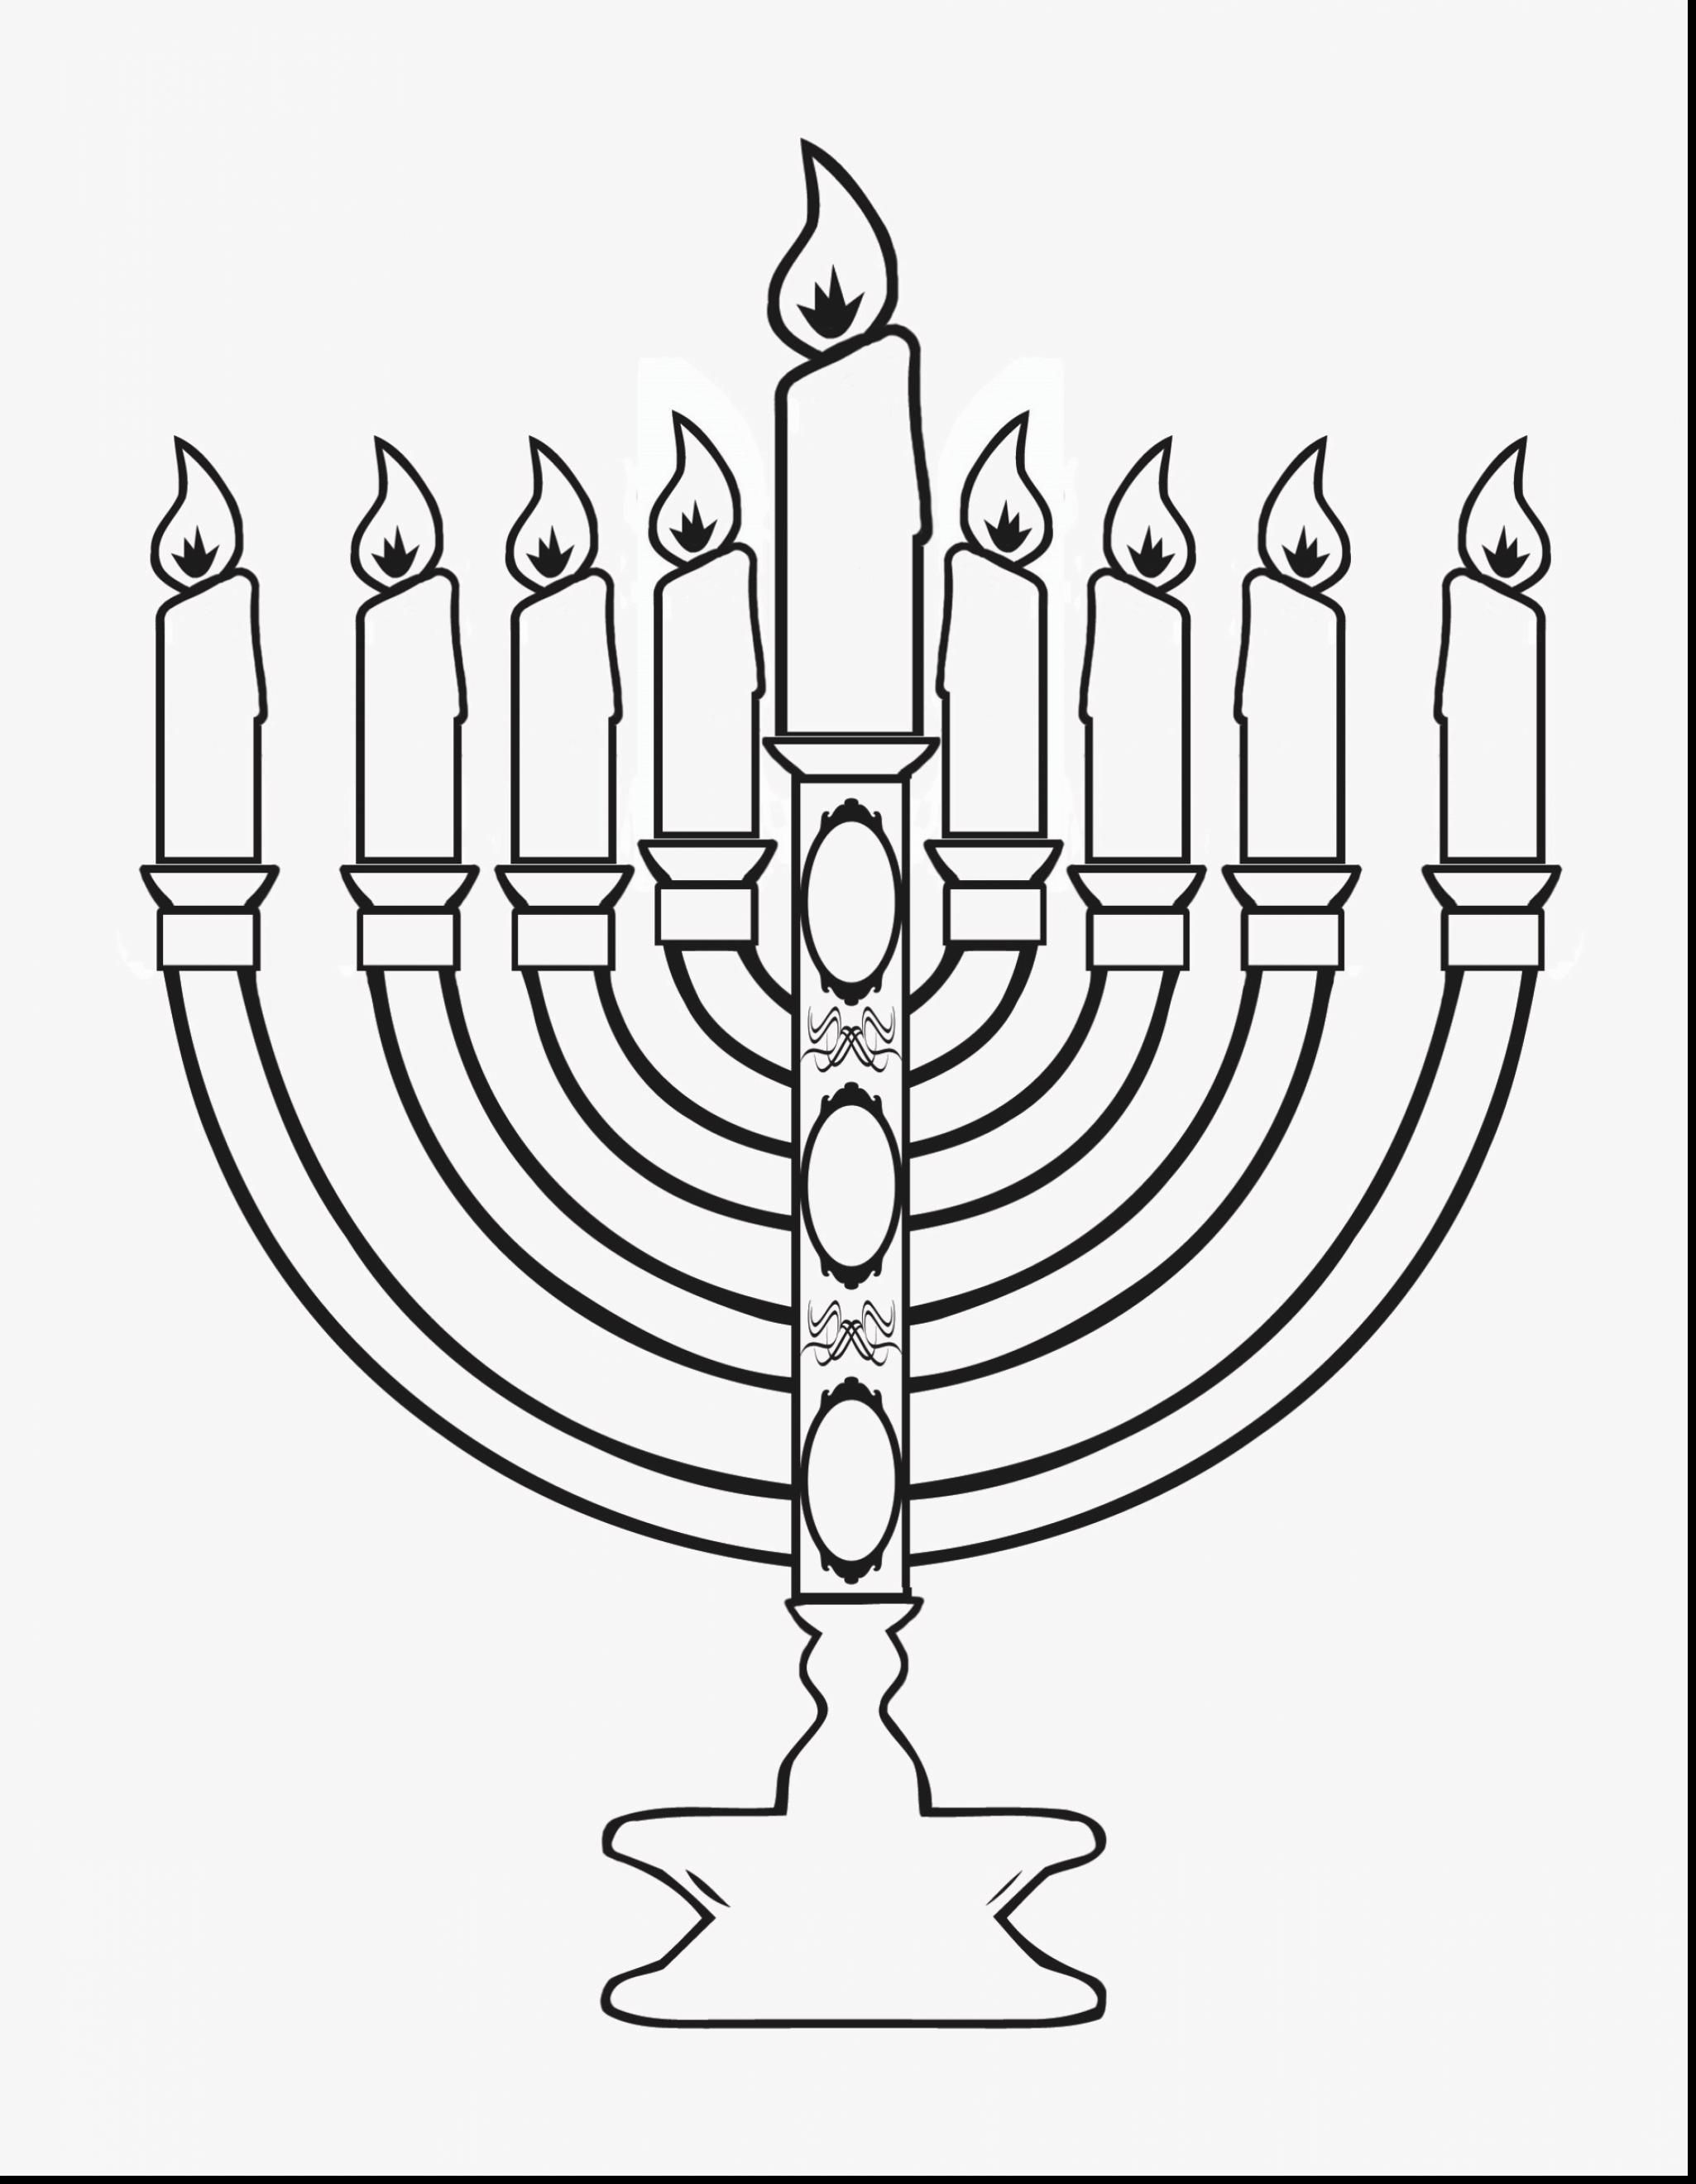 Hanukkah Menorah Outline.